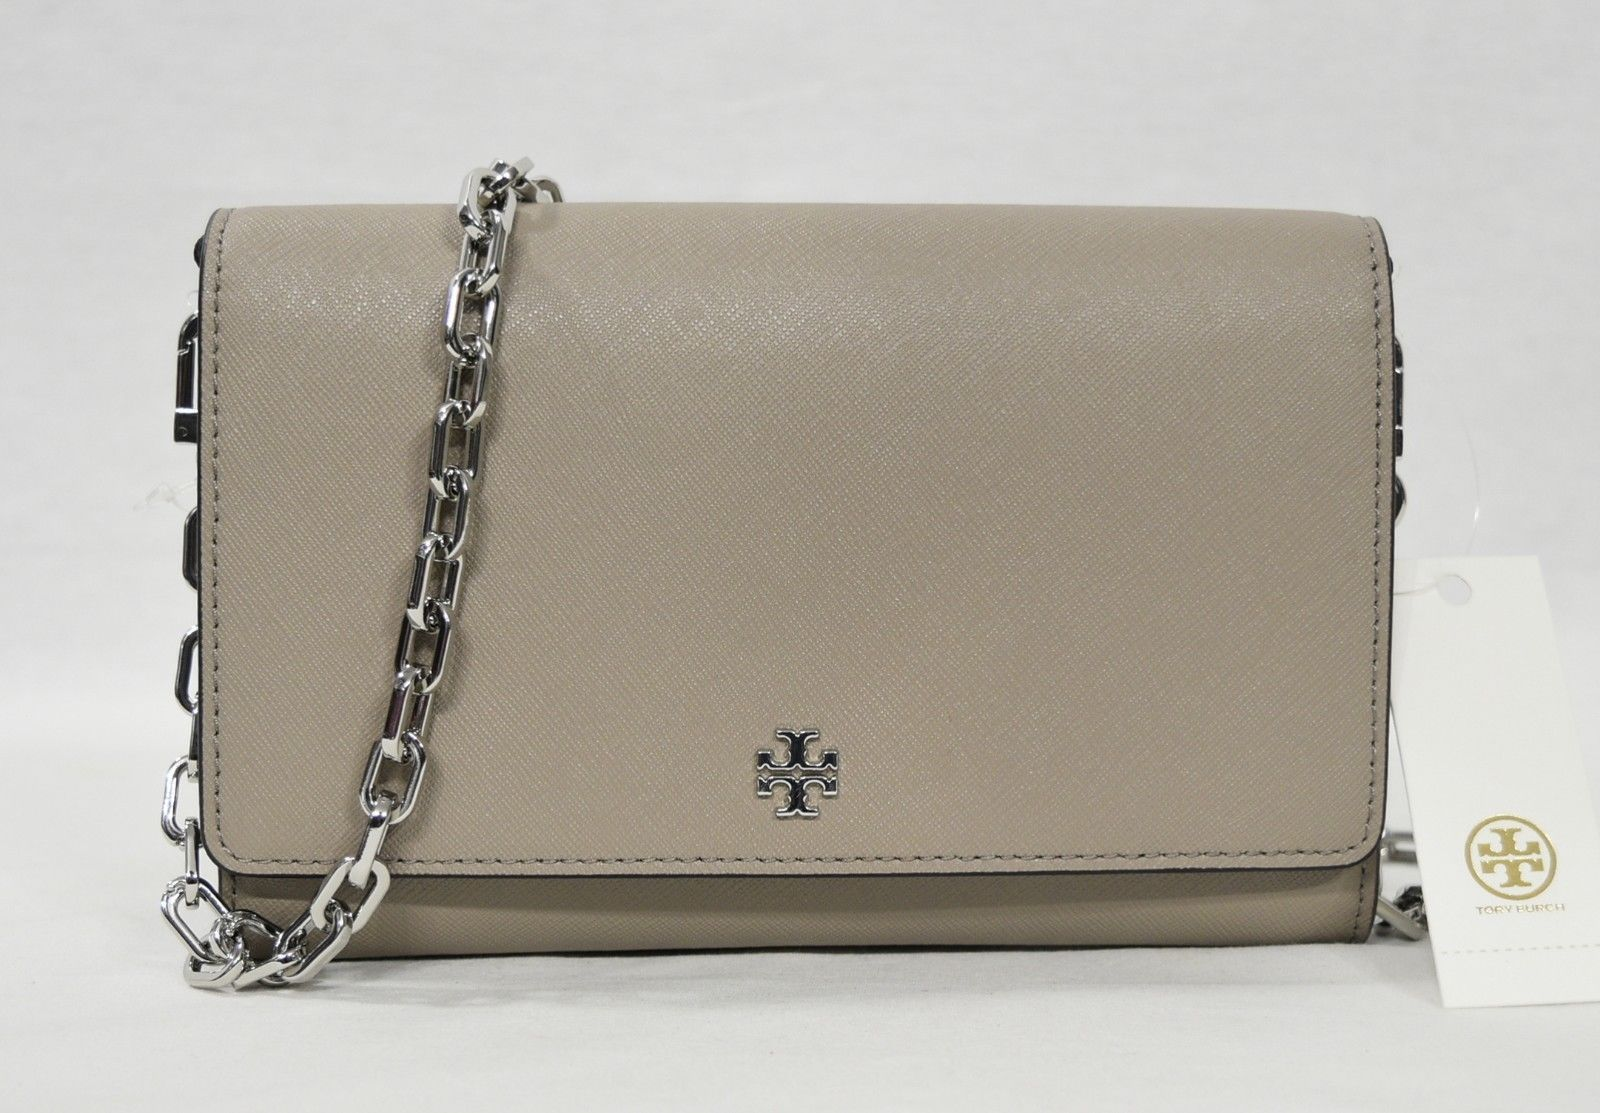 Primary image for Tory Burch Robinson Leather Chain Wallet/Shoulder/Crossbody Bag in French Gray